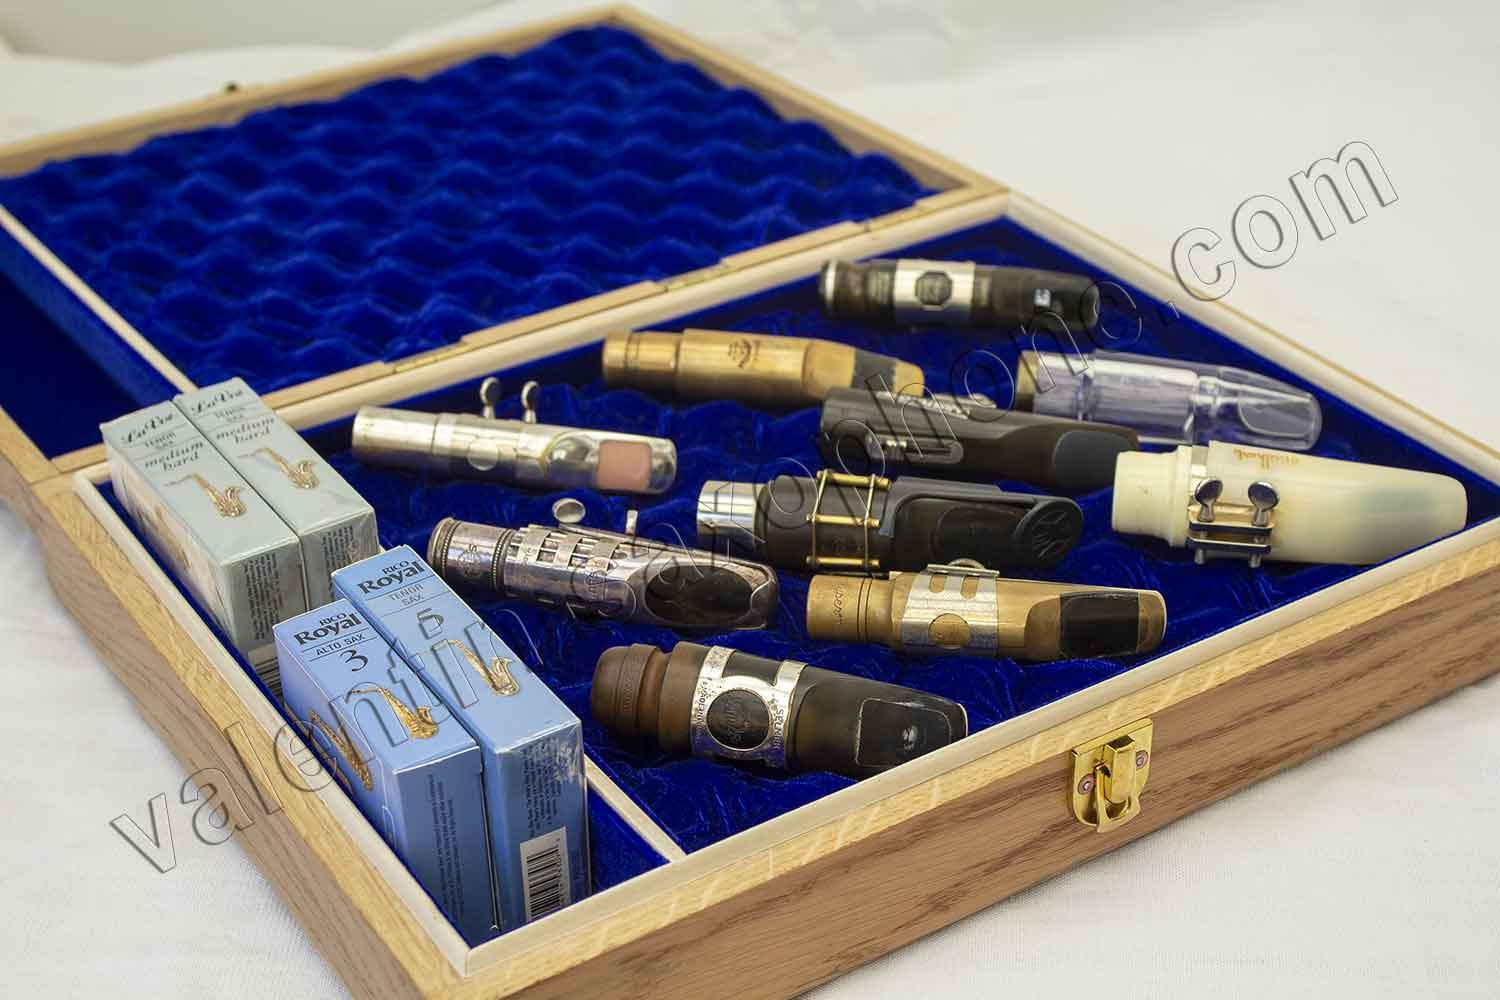 Valentin cases : The case feature a compartment for 4 reeds boxes, i.e. 40 reeds.